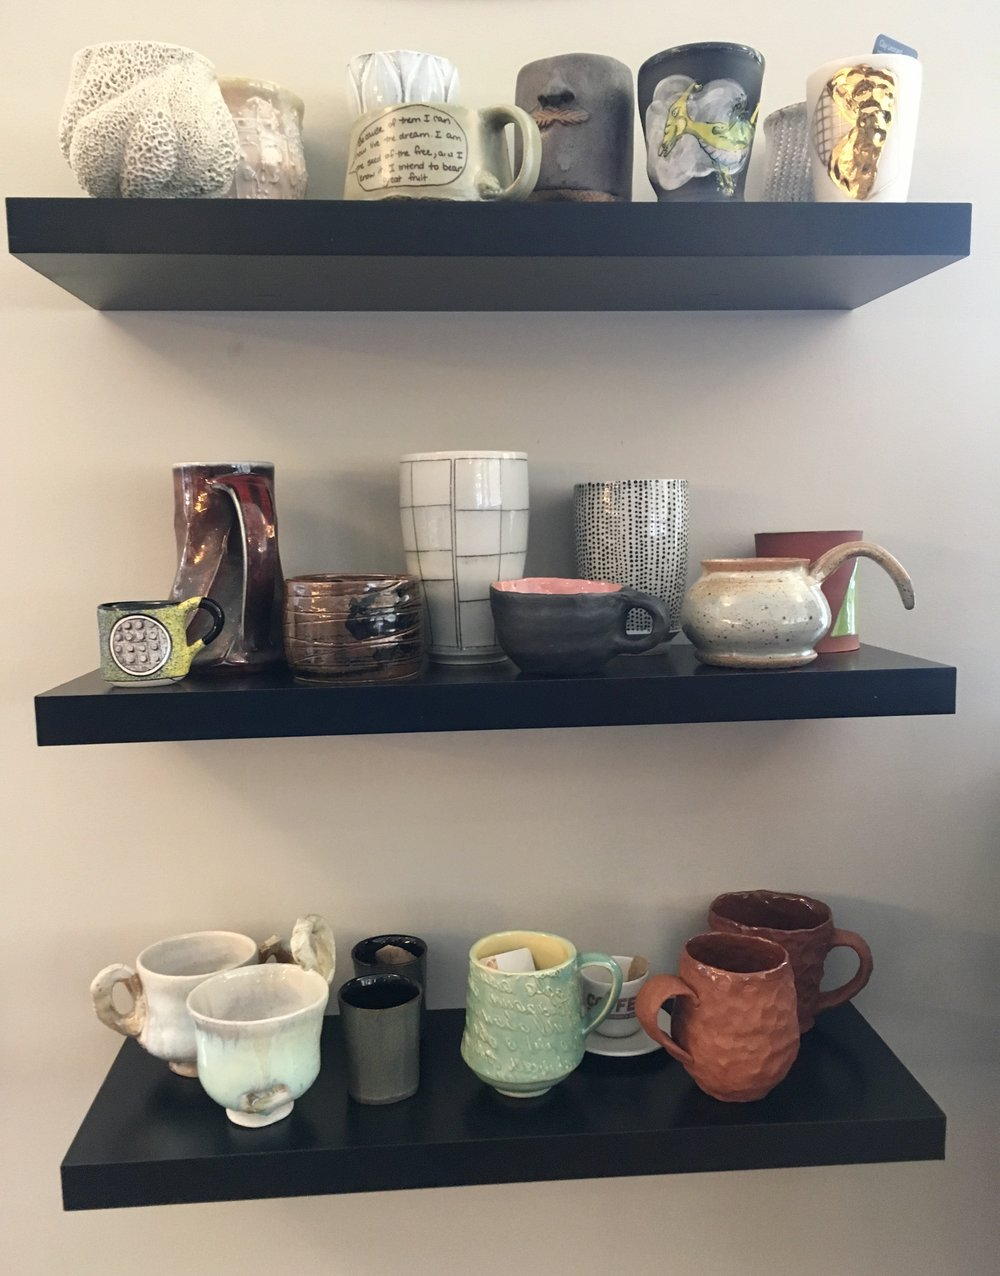 Some of the mugs on display at Everyday Cafe during Cups of Conversation: 50 States.